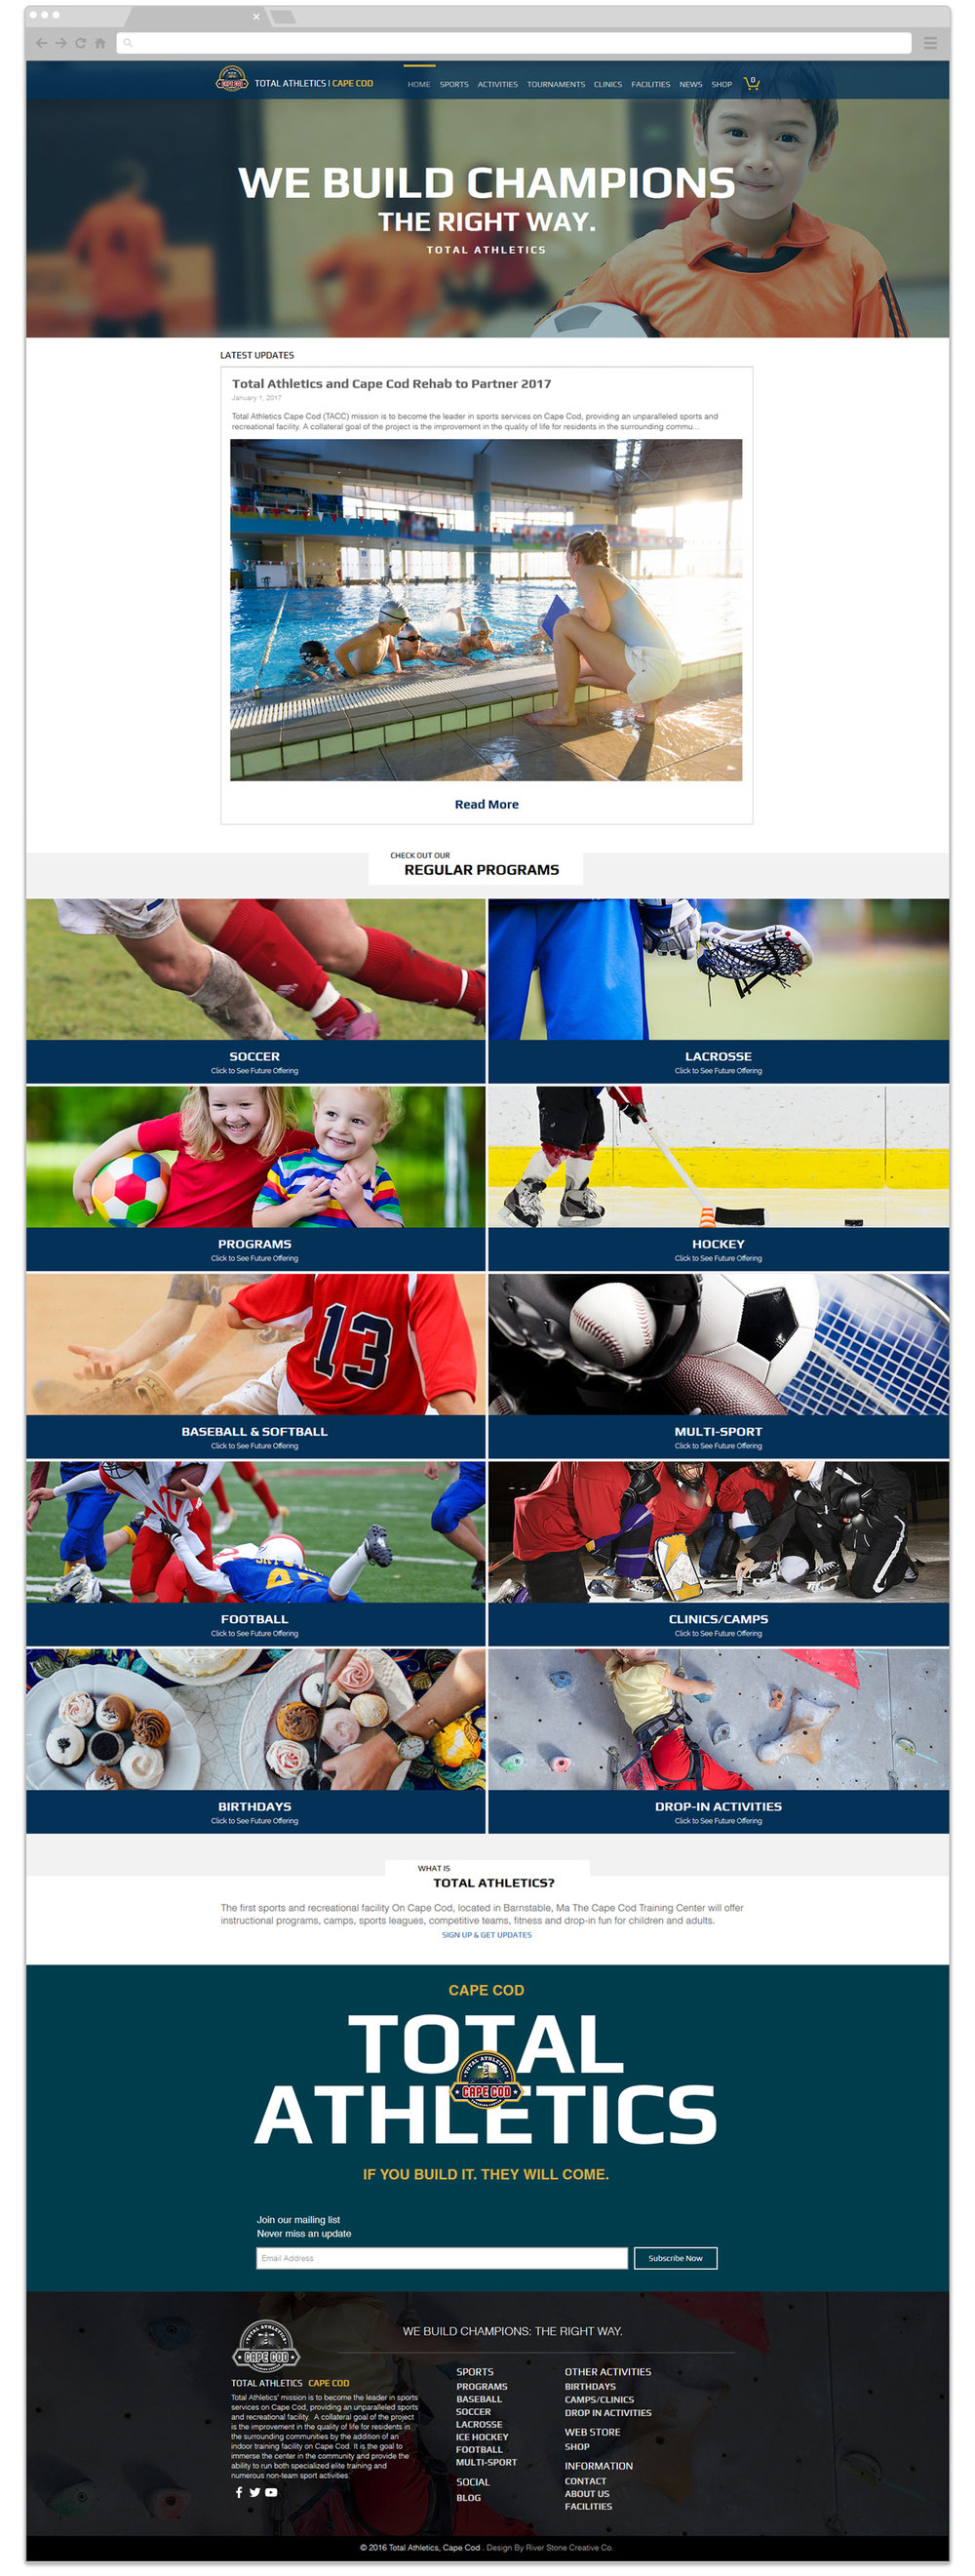 river-stone-creative-co-websites-sports-center-website-2